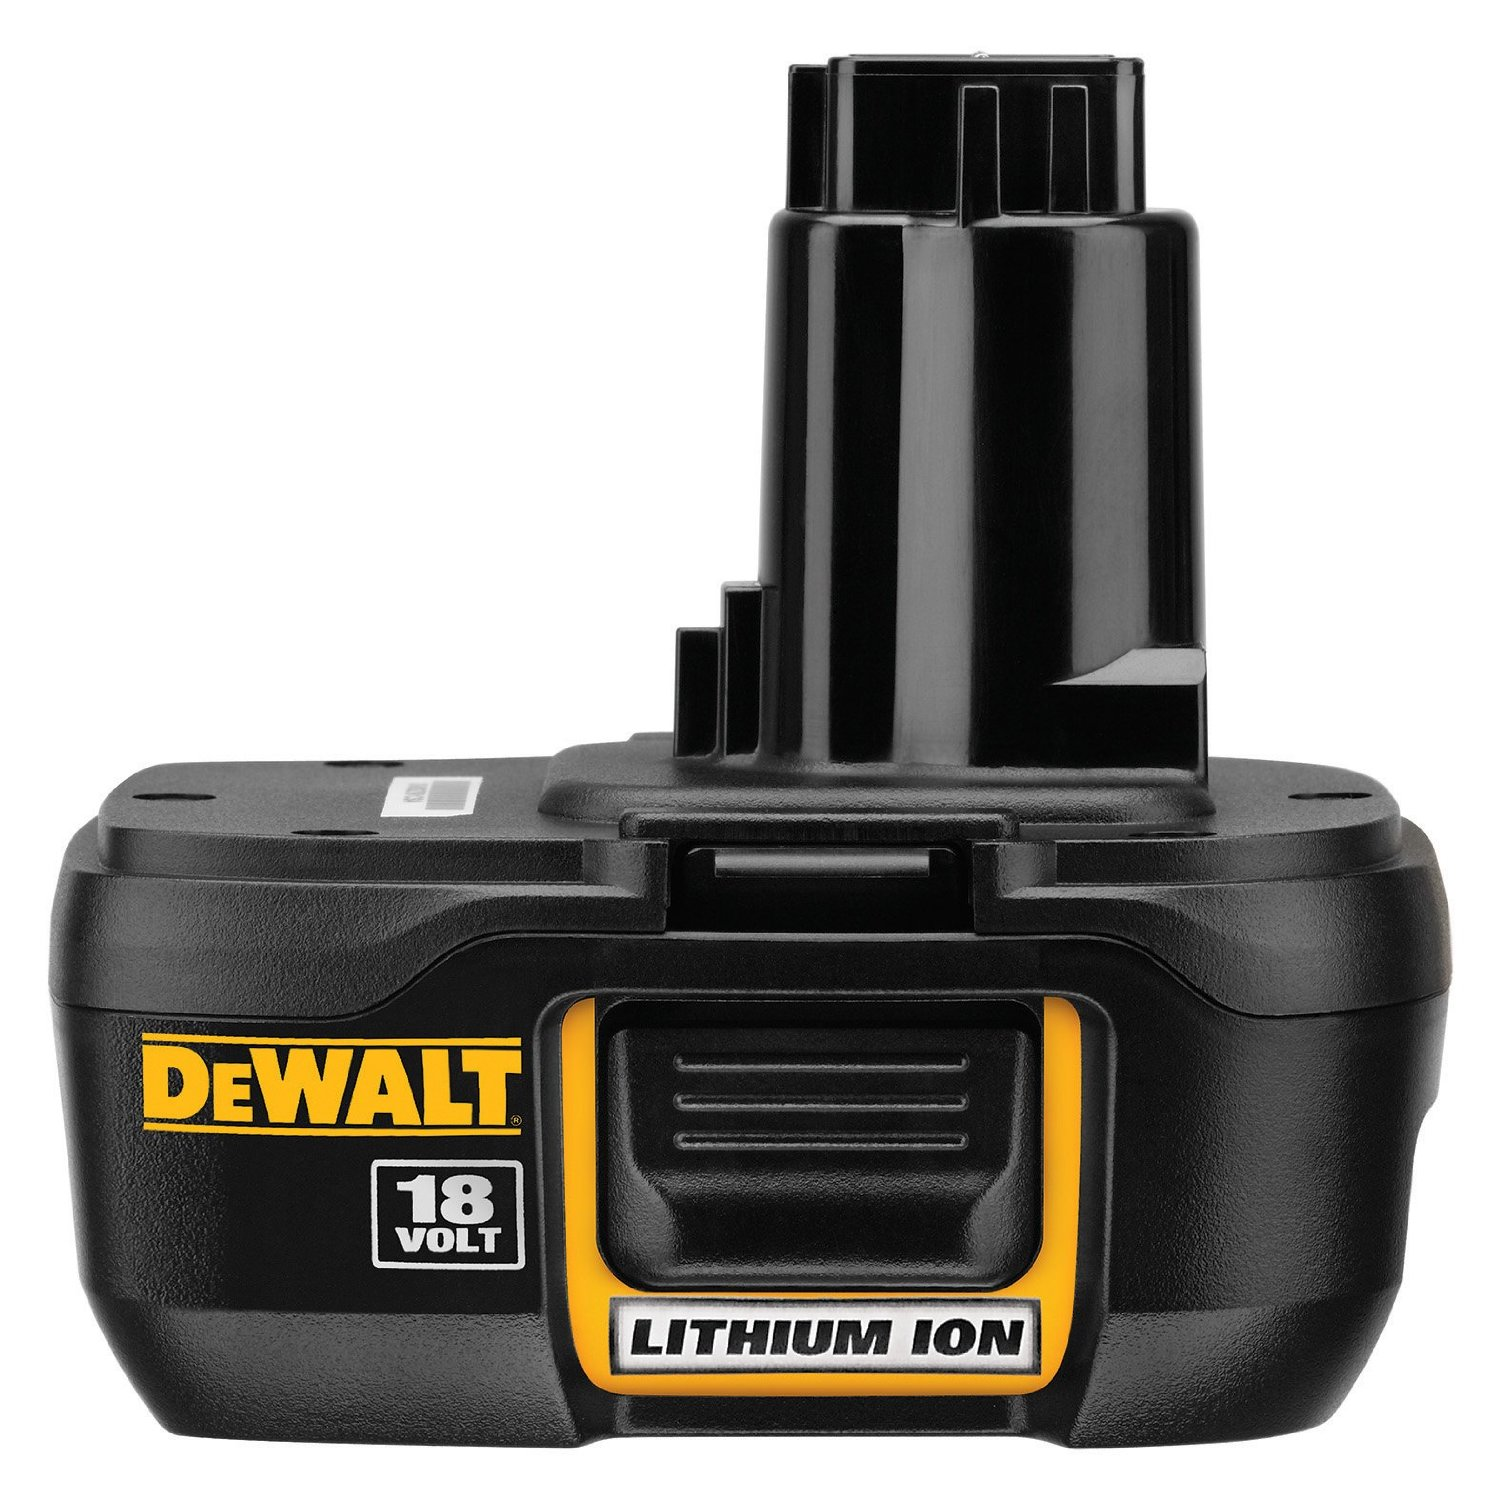 DeWALT DC9181 18-Volt Compact Lithium-Ion Battery Pack at Sears.com